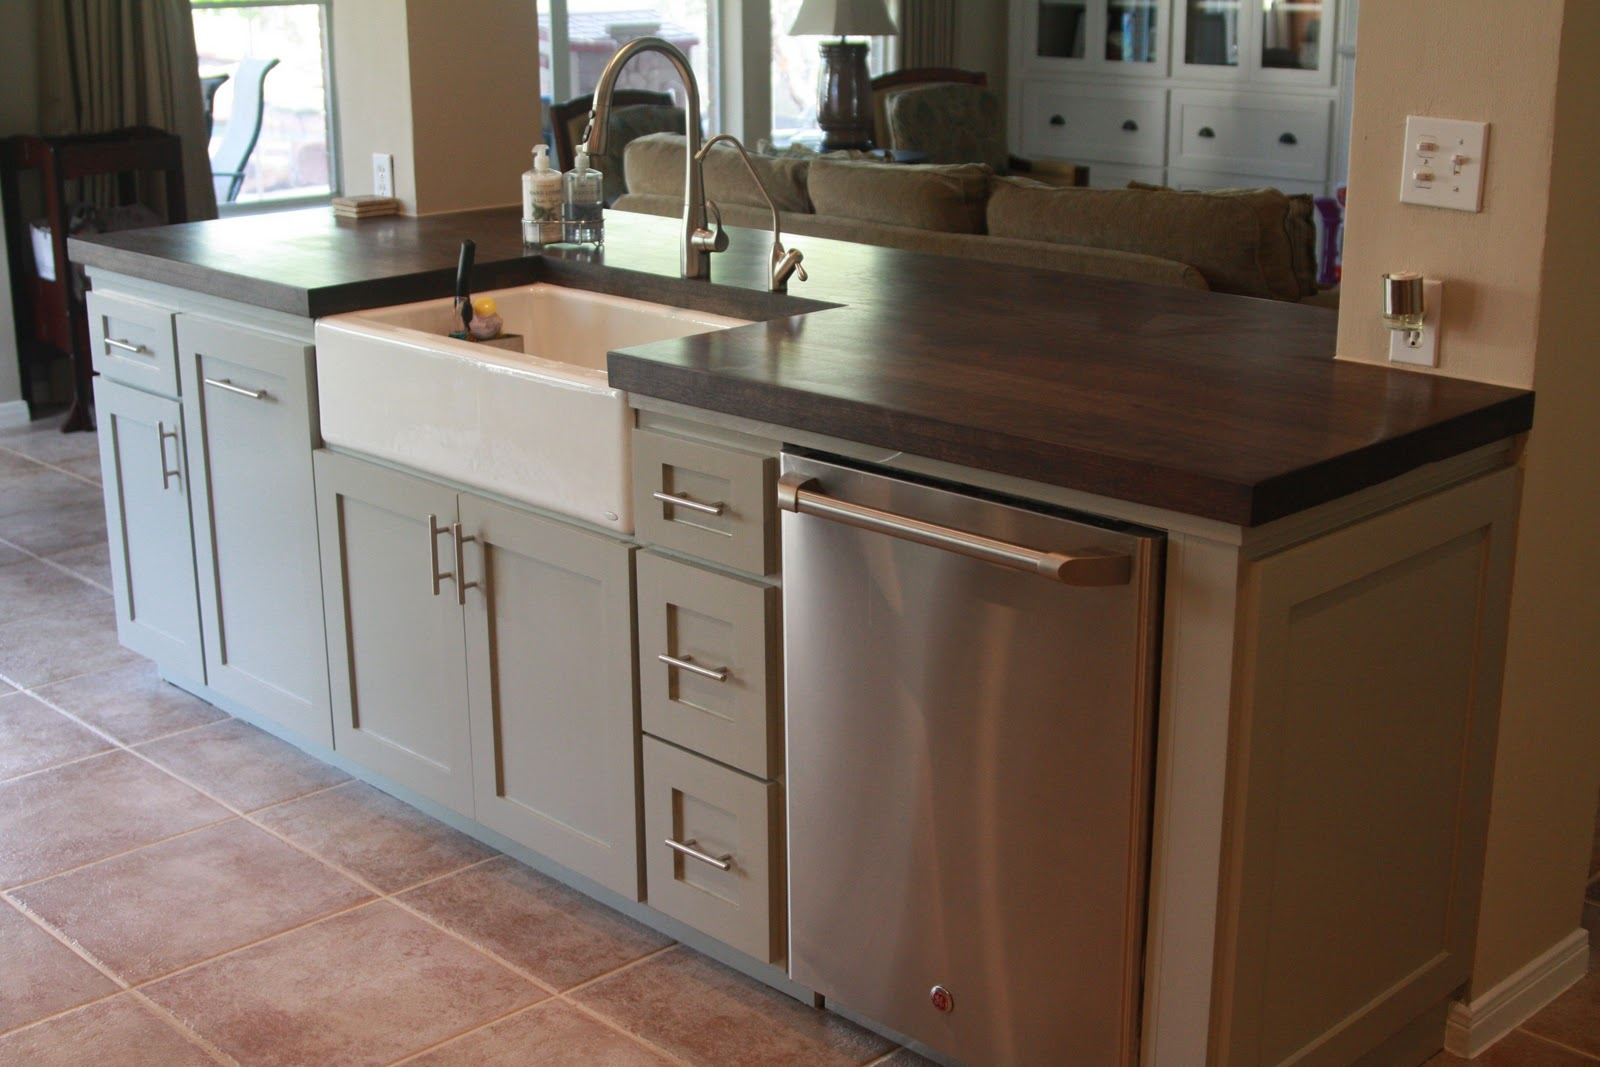 Kitchen Sink Island : ... the sink and another bank of drawers between the sink and dishwasher